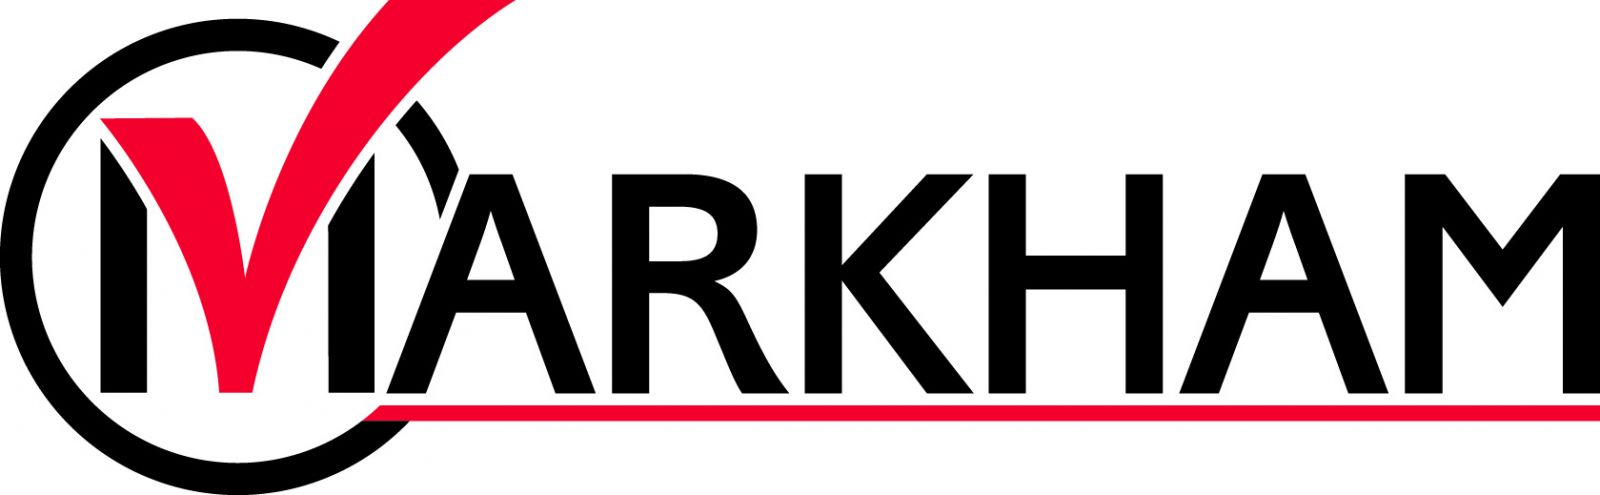 Town of Markham